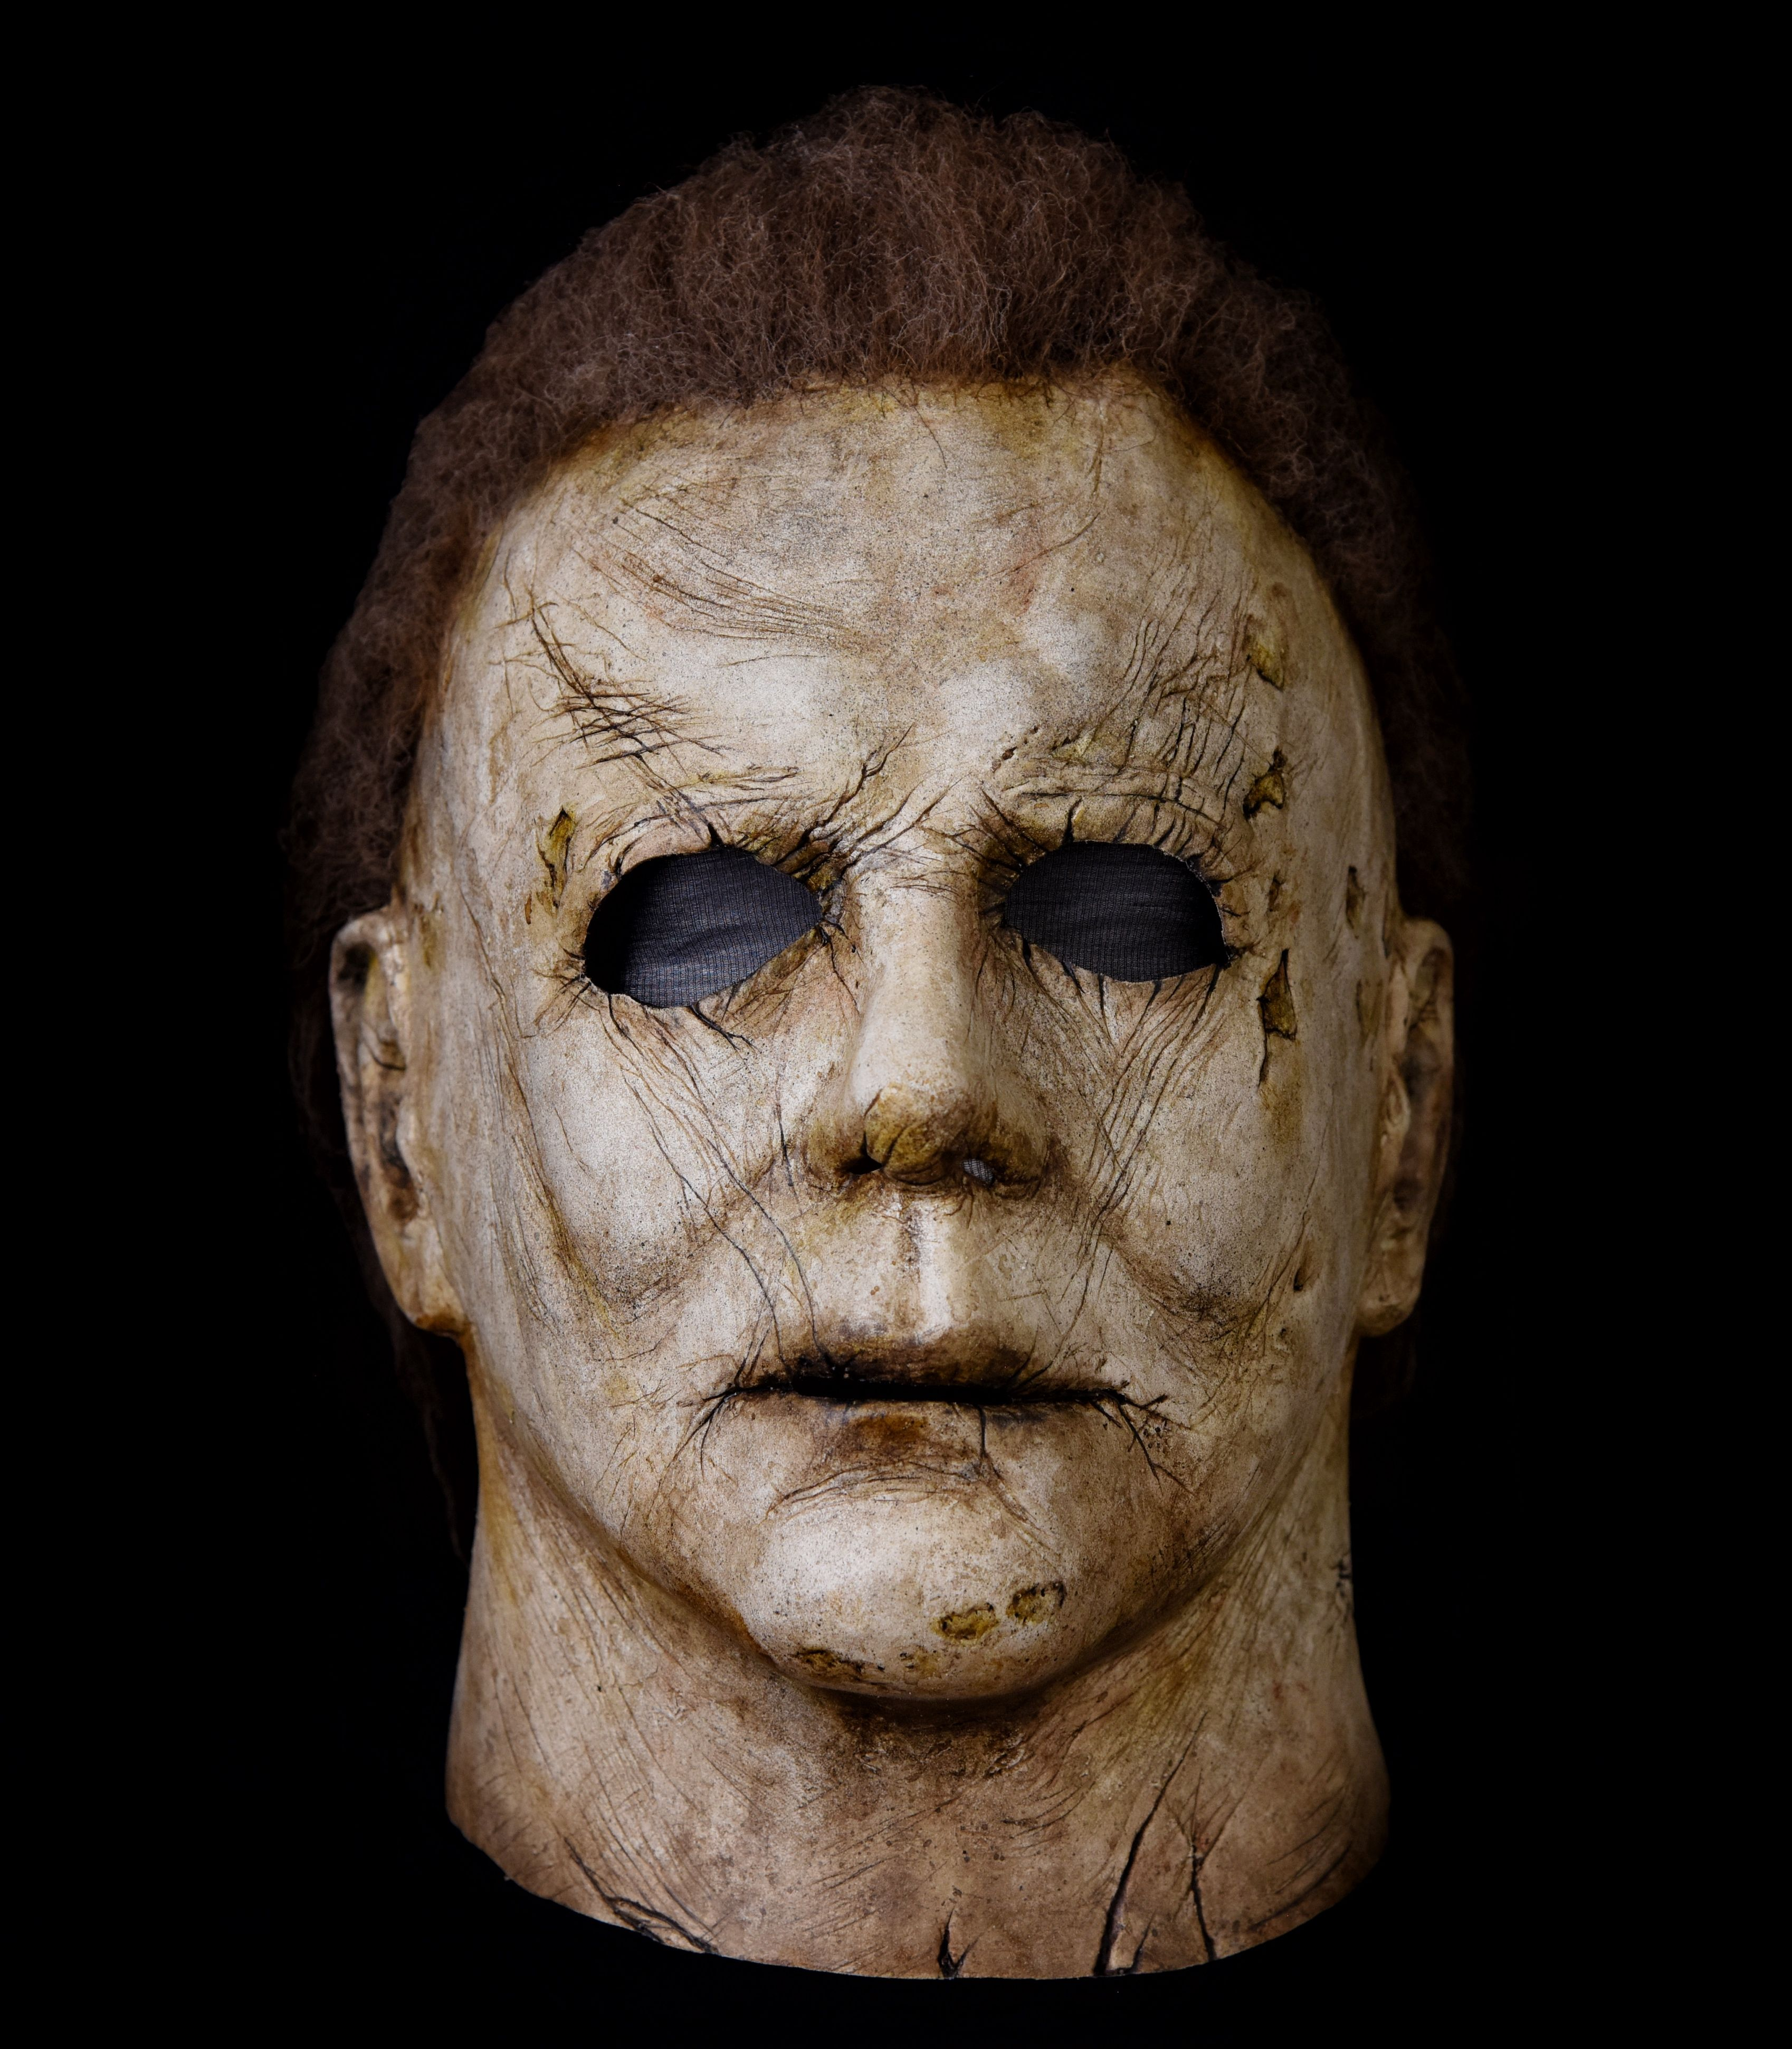 Halloween 2018 Michael Myers mask. Painted by Heath